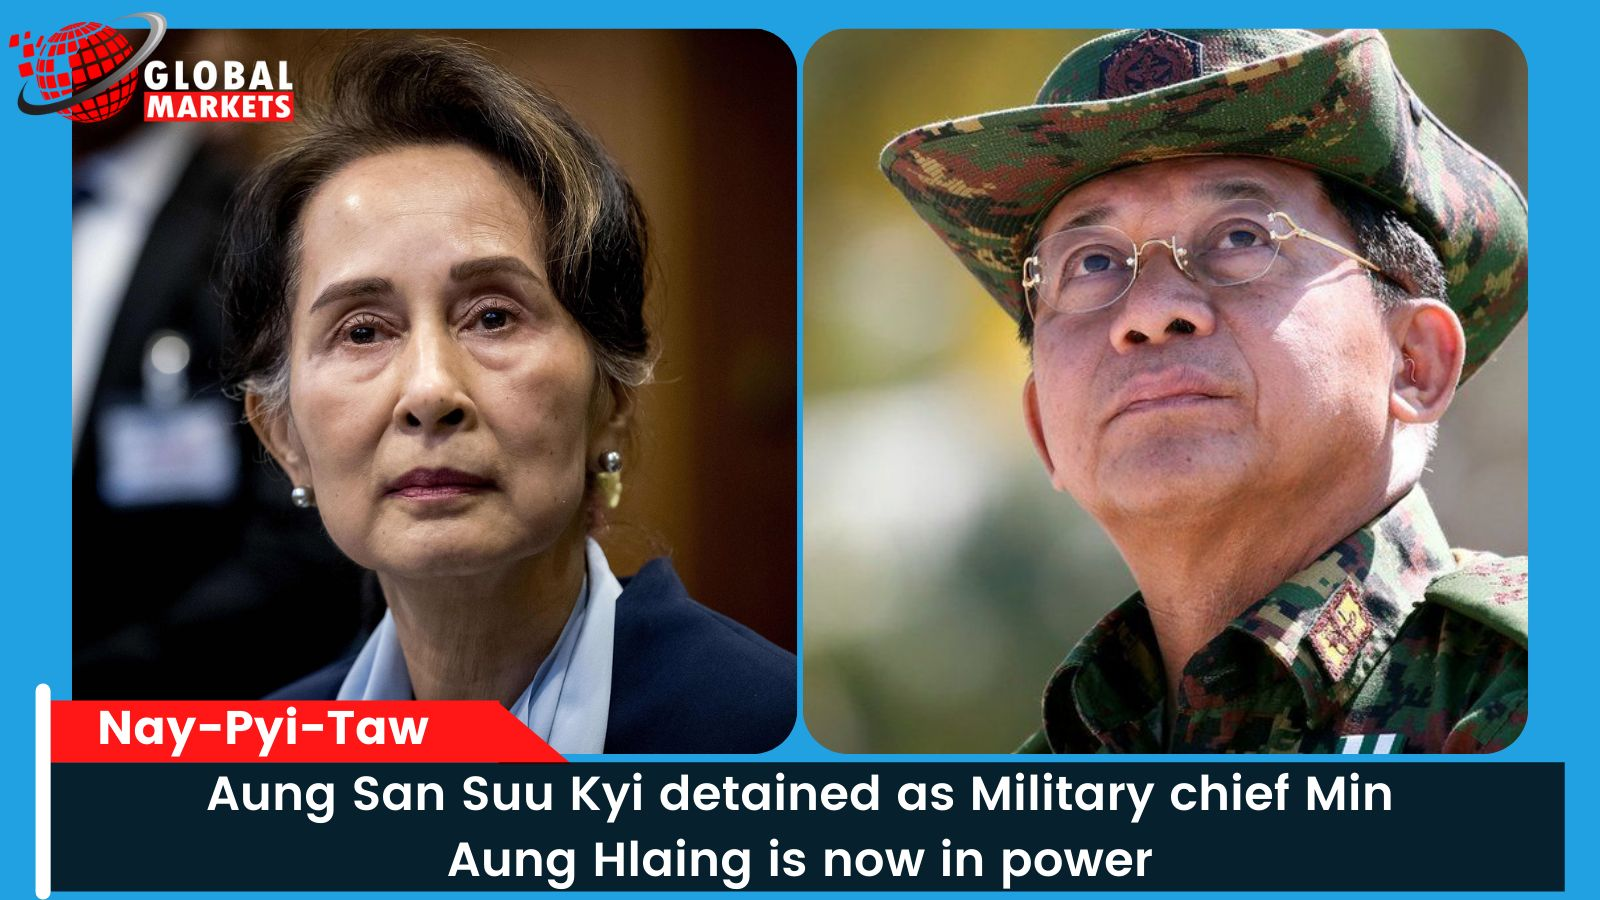 Aung San Suu Kyi detained as Military chief Min Aung Hlaing is now in power